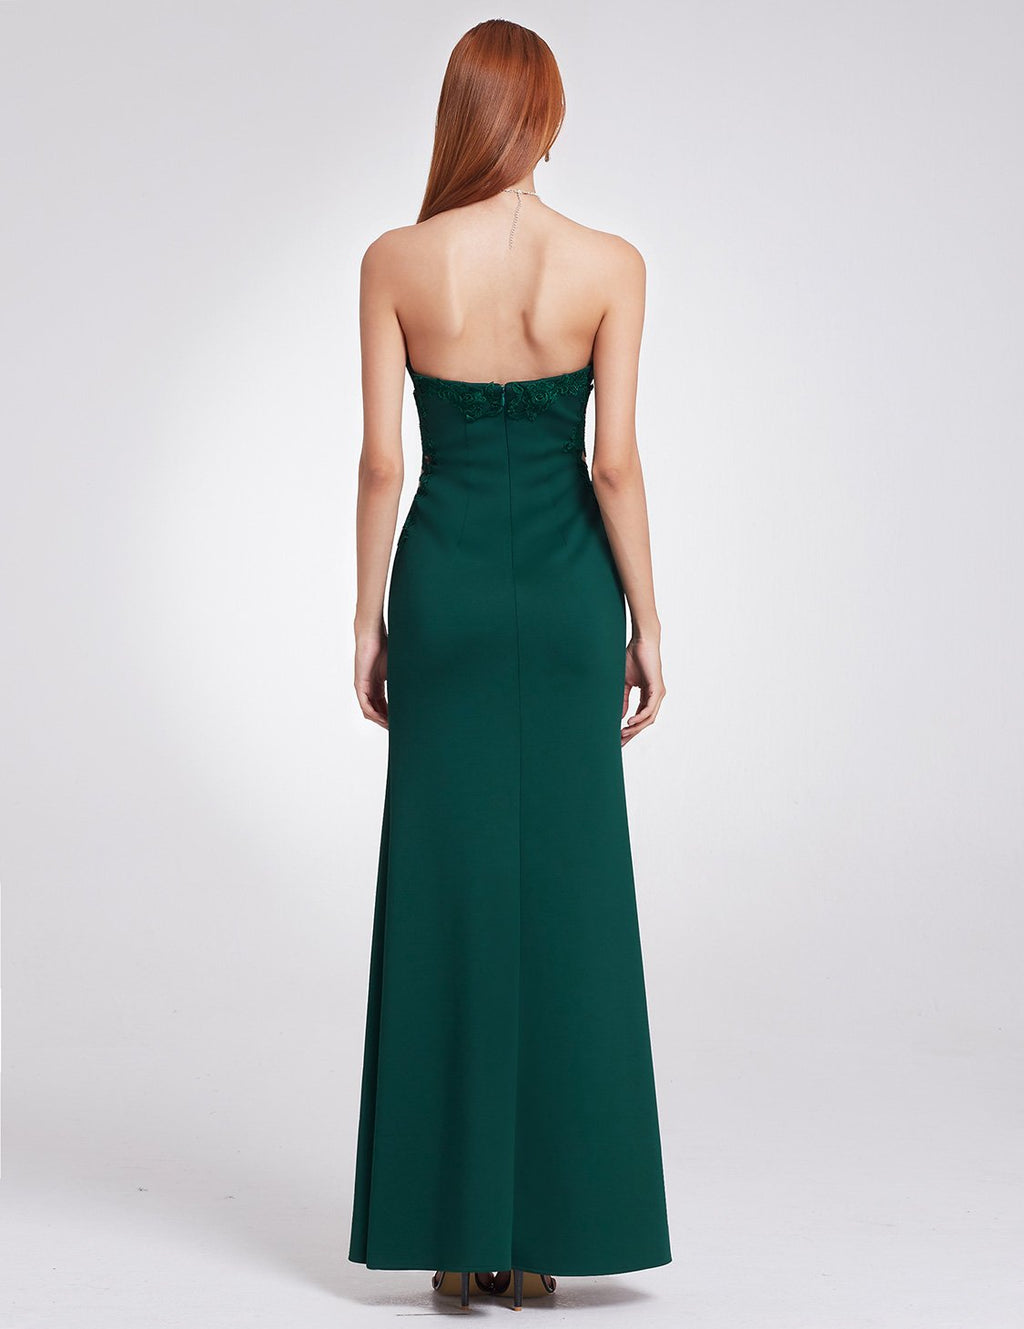 Romantic Strapless Long Dress Dark Green